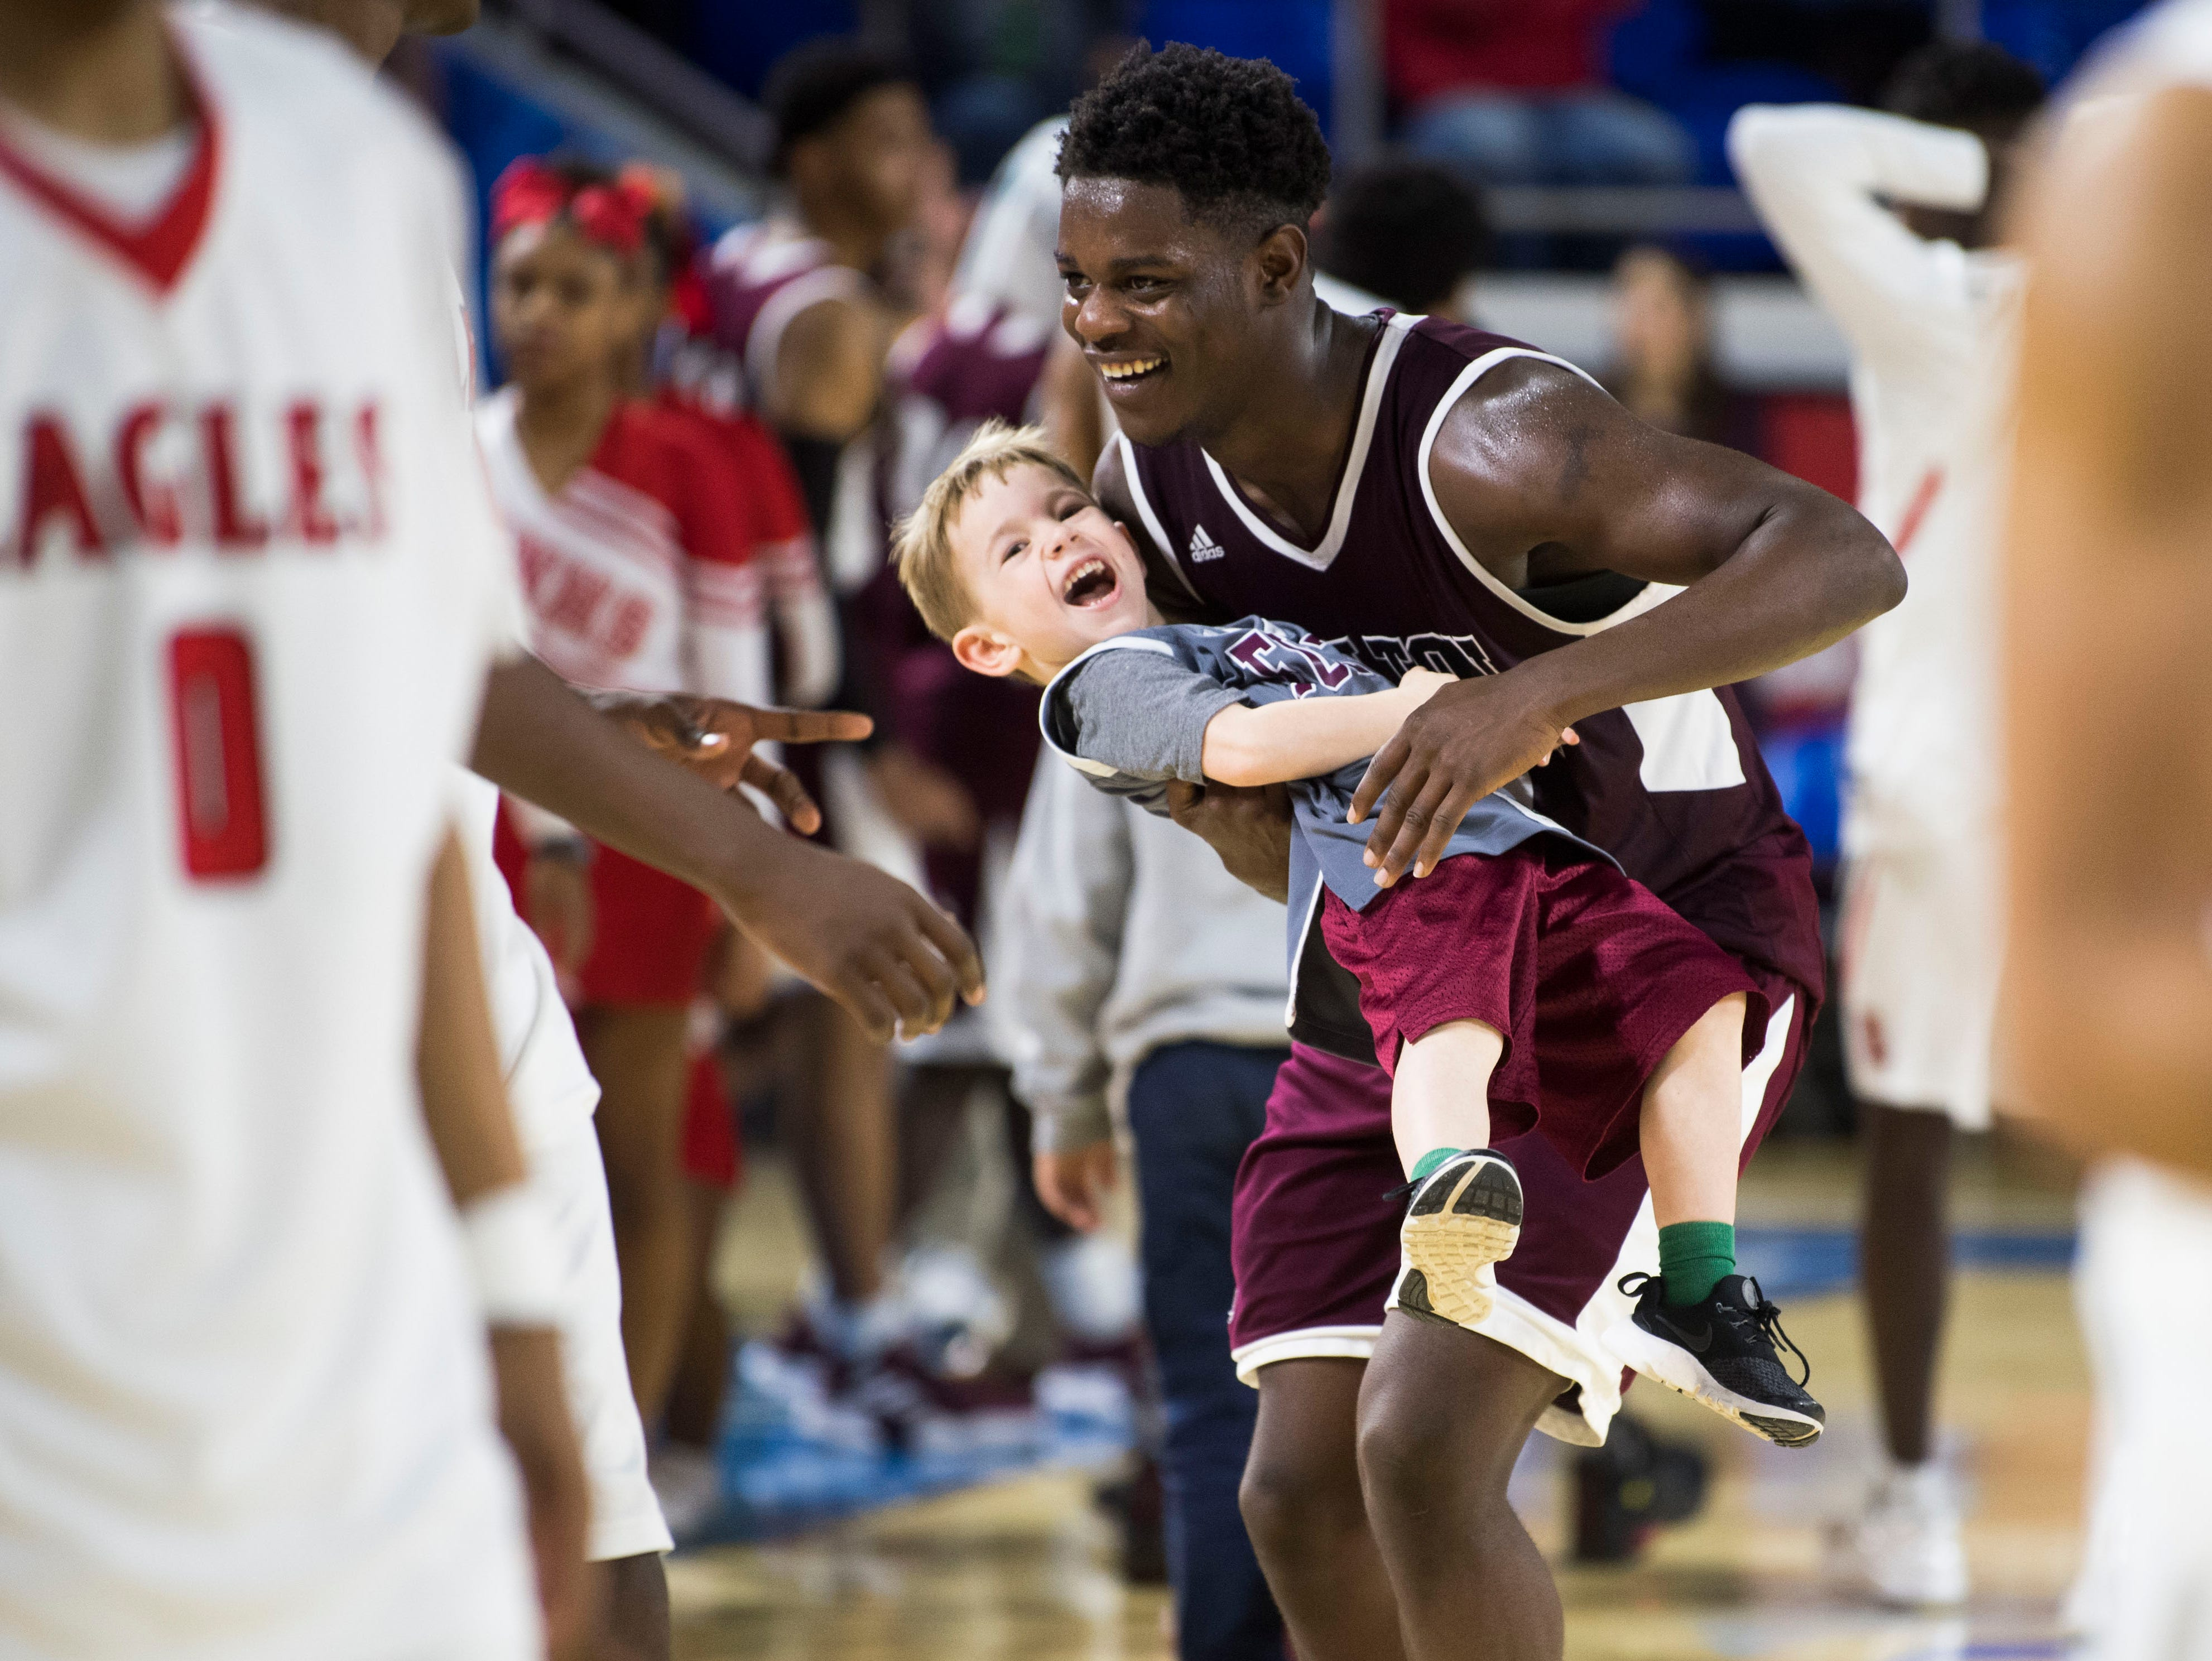 Fulton's Deshaun Page (32) picks up assistant coach Jonathan Cox's son Tatum Cox, 4, while celebrating a win after a TSSAA AA state semifinal game between East Nashville and Fulton at the Murphy Center in Murfreesboro, Friday, March 15, 2019. Fulton defeated East Nashville 66-55.